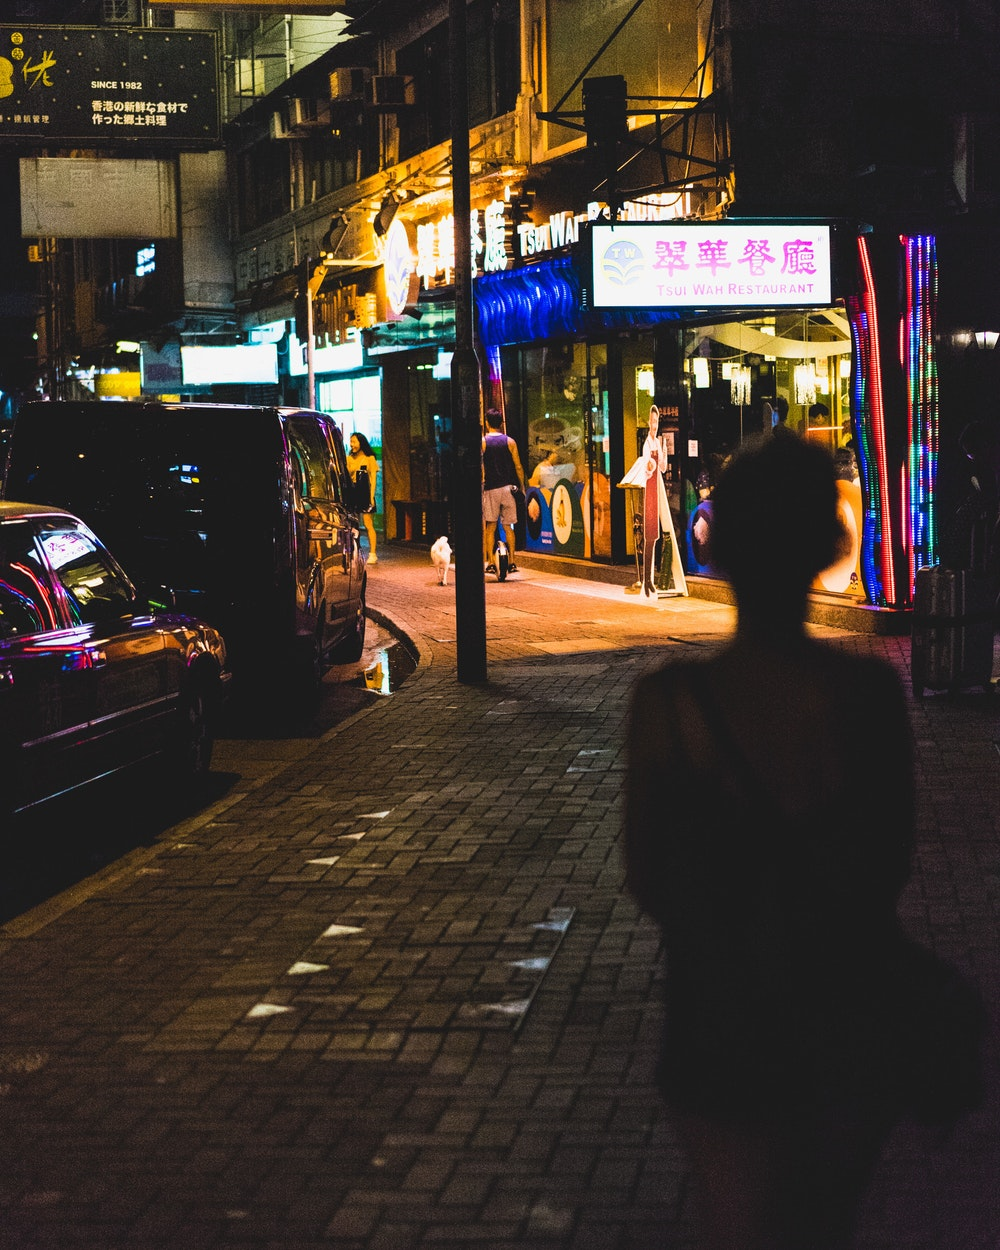 Girl silhouetted by neon signs at night